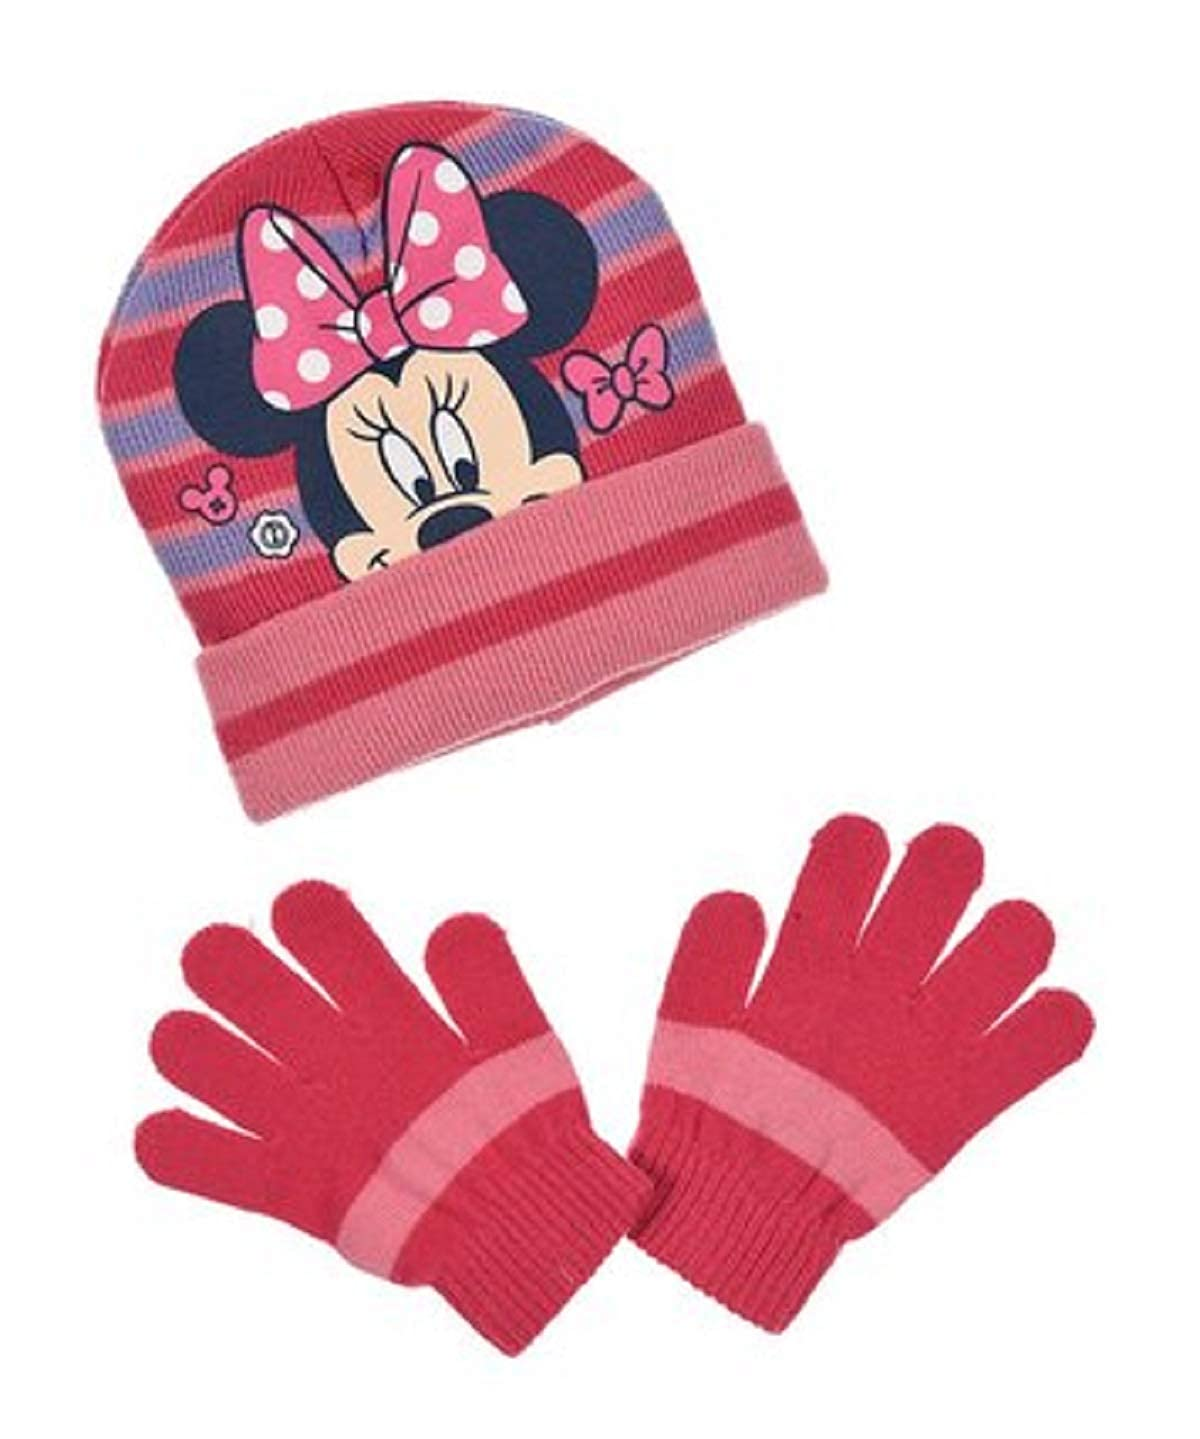 GIRLS MINNIE MOUSE HAT /& GLOVE SET 3-8 YEARS